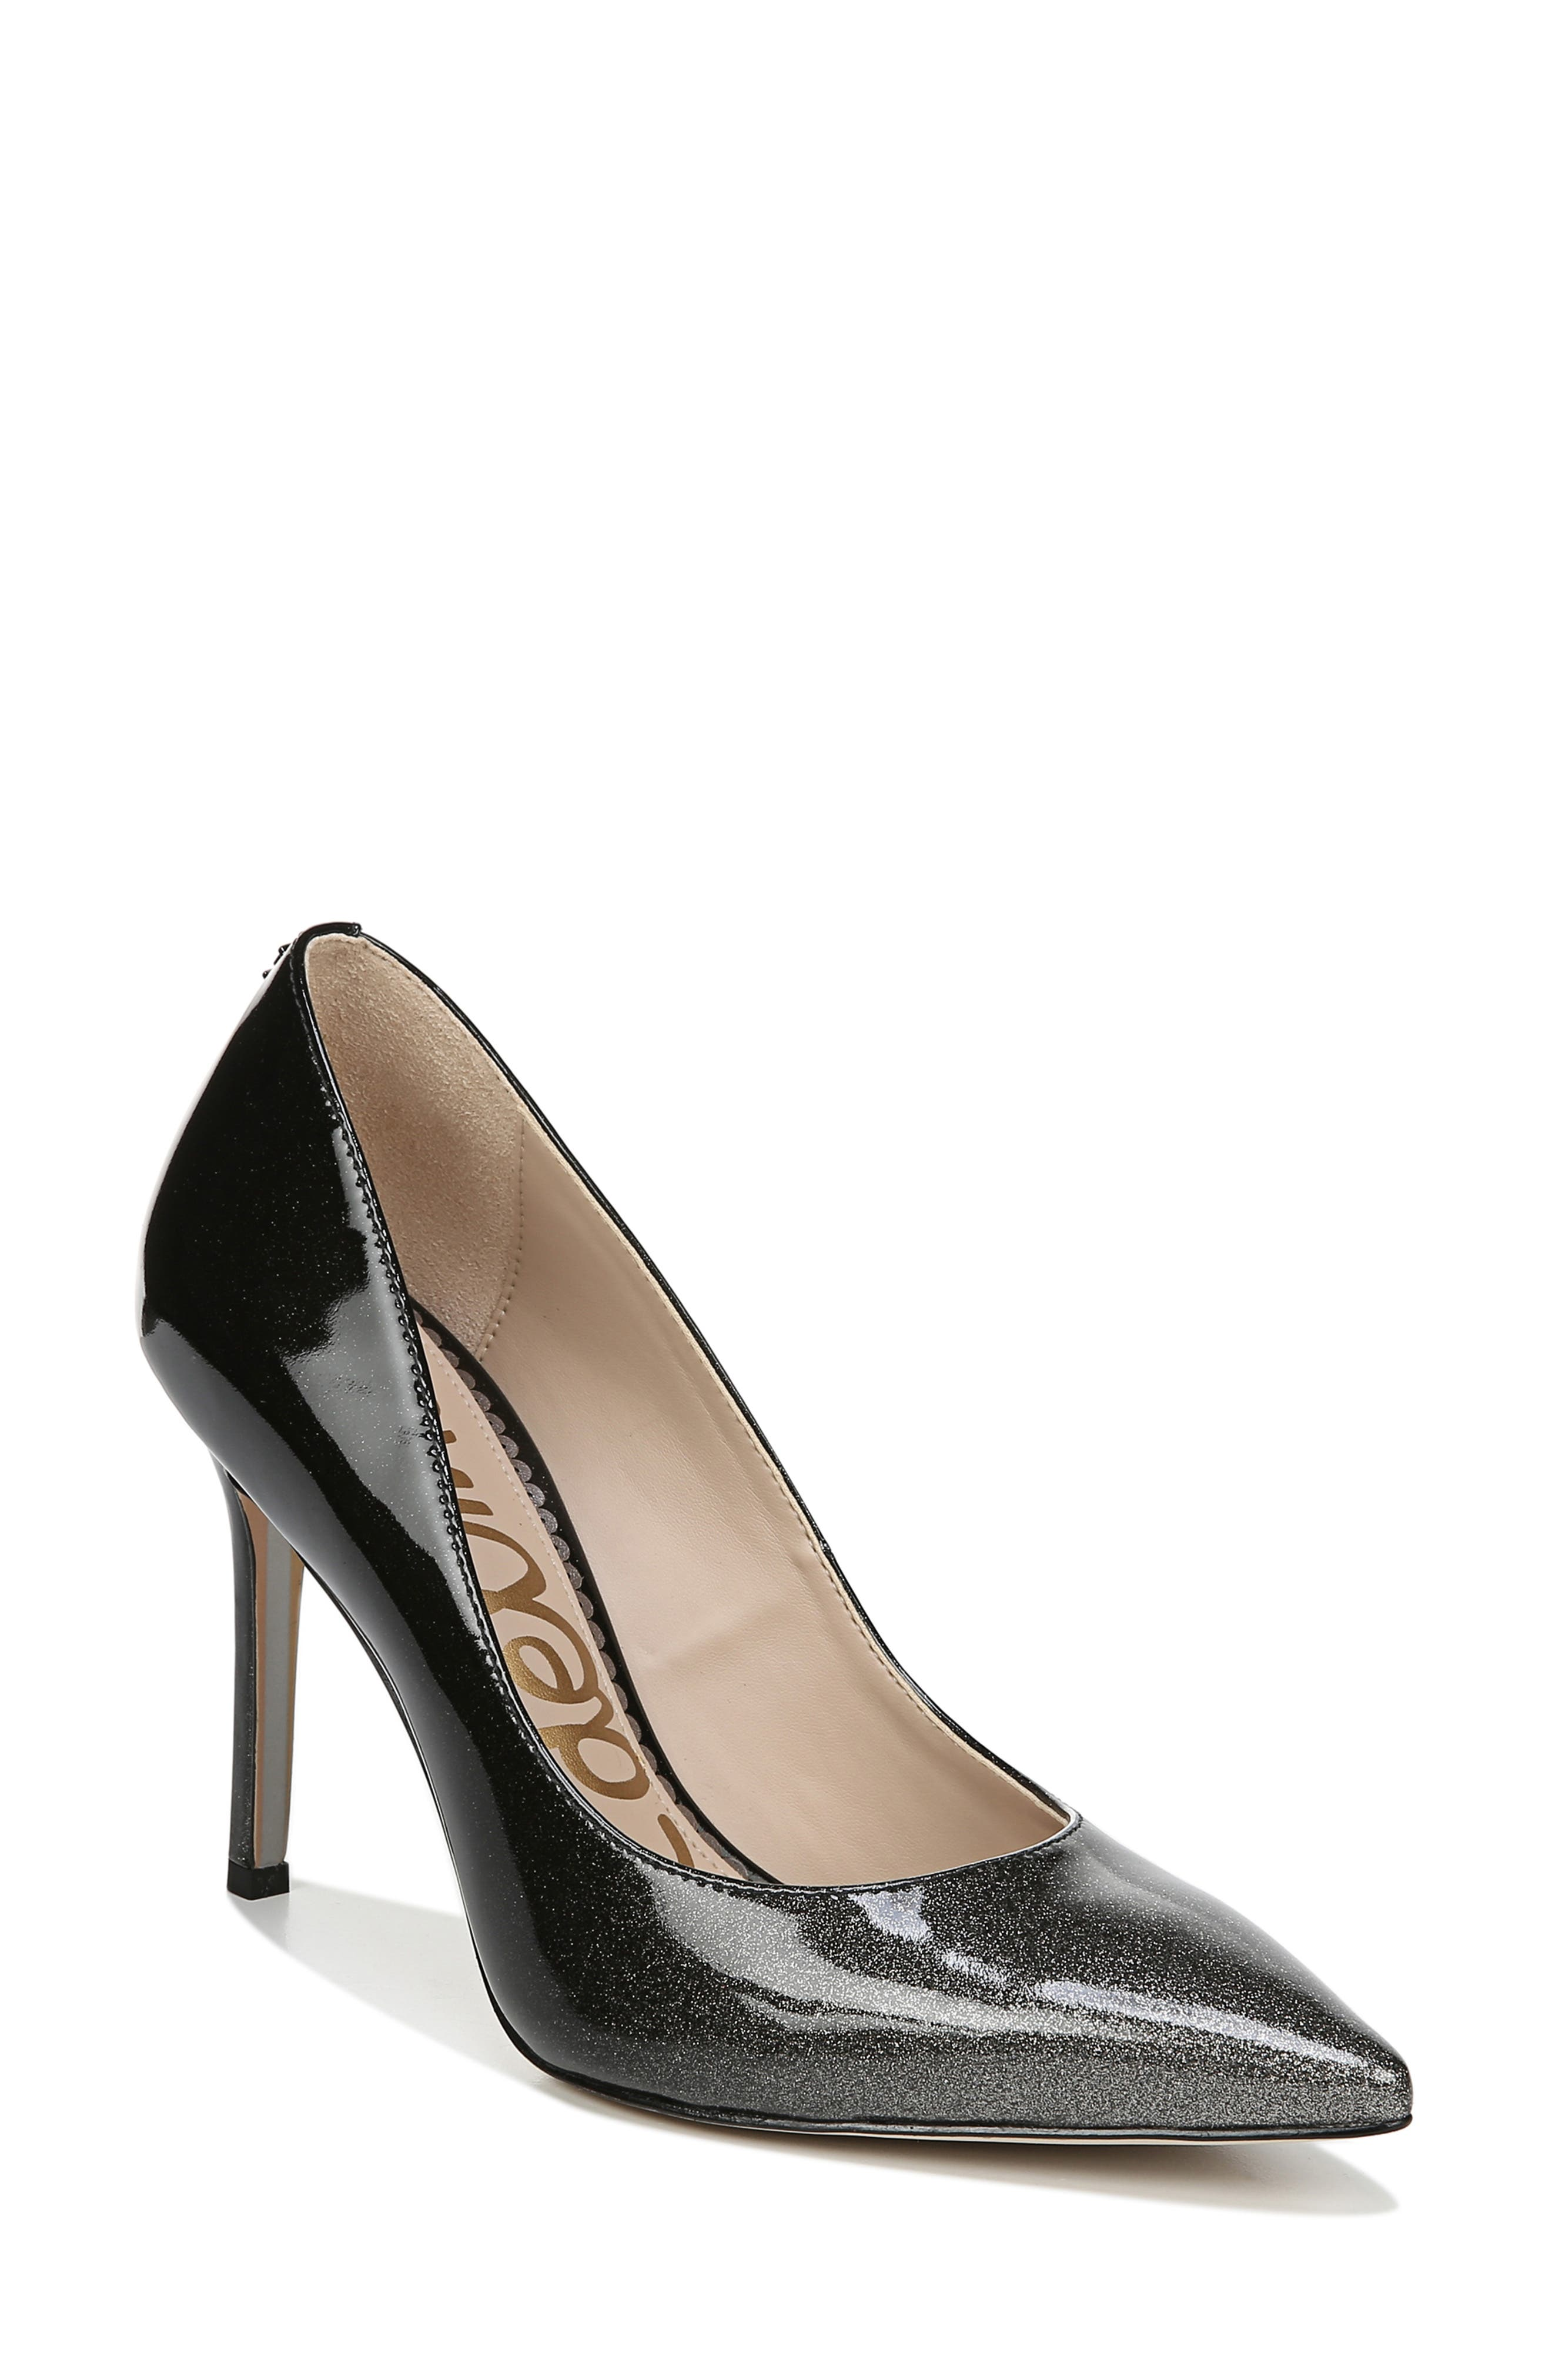 SAM EDELMAN, Hazel Pointy Toe Pump, Main thumbnail 1, color, BLACK/ SILVER